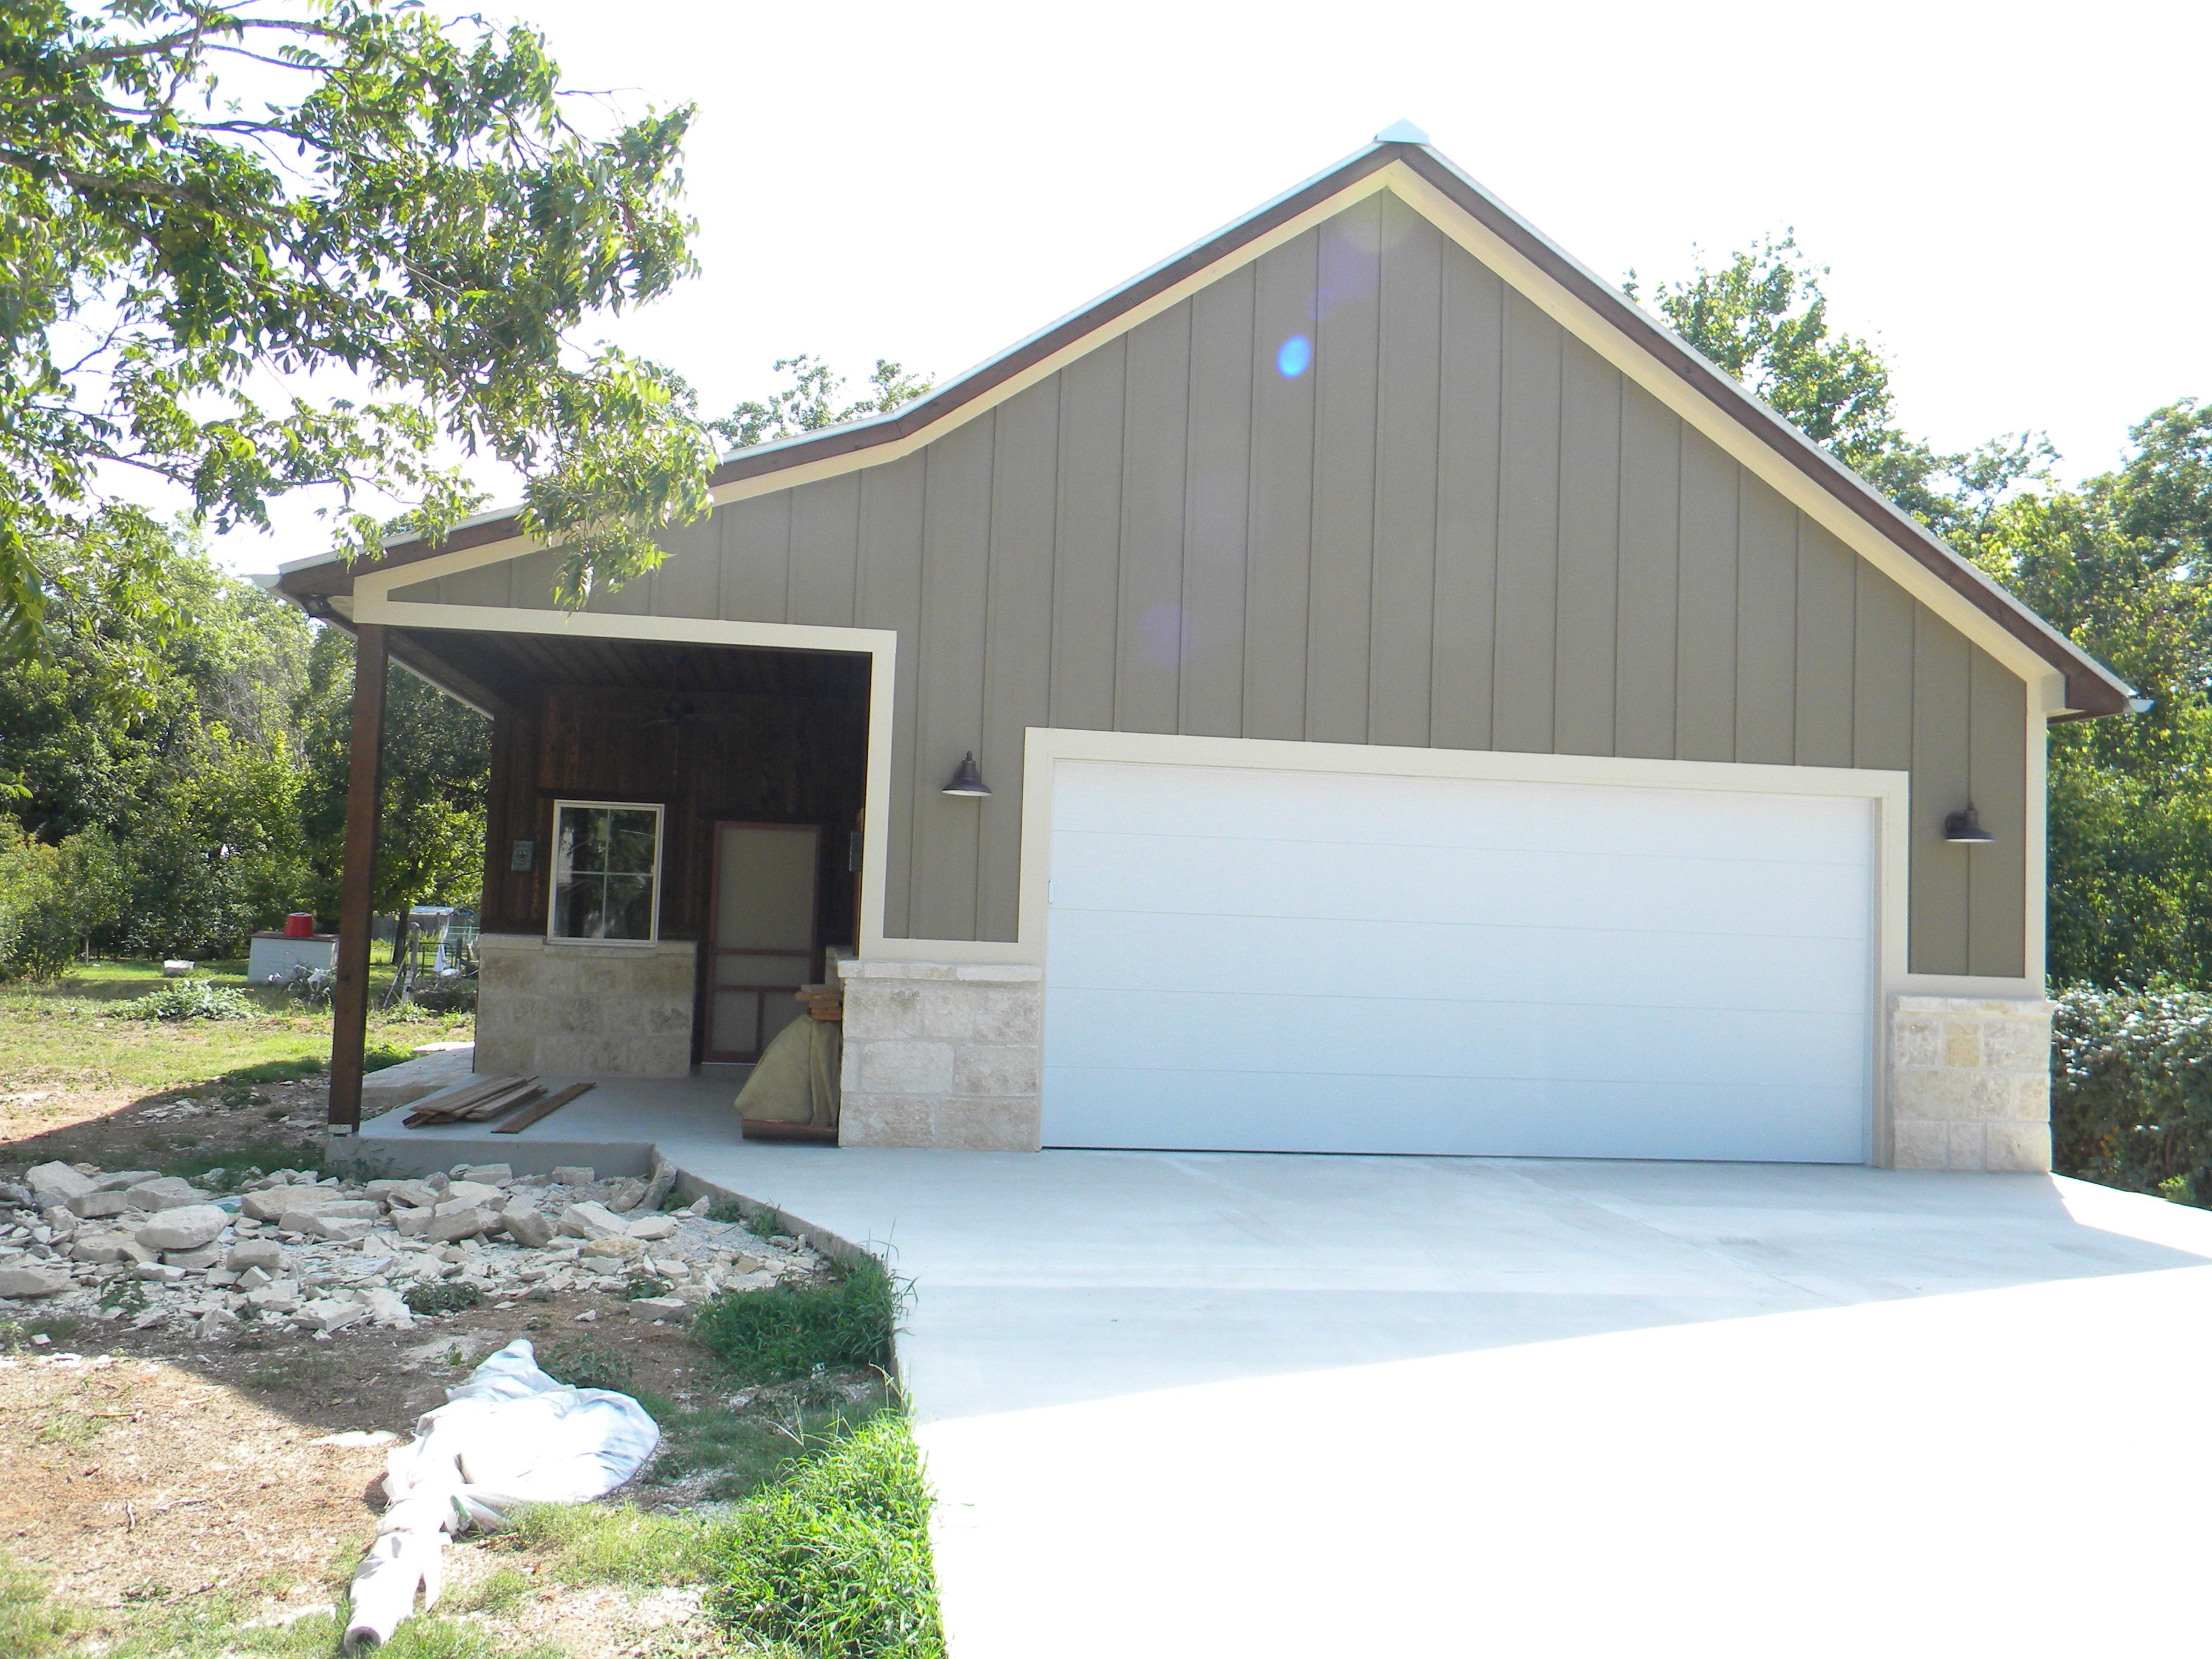 18x8 Flush Steel Garage Door Before Barn Look Faux Paint Steel Garage Doors Garage Door Paint Steel Garage